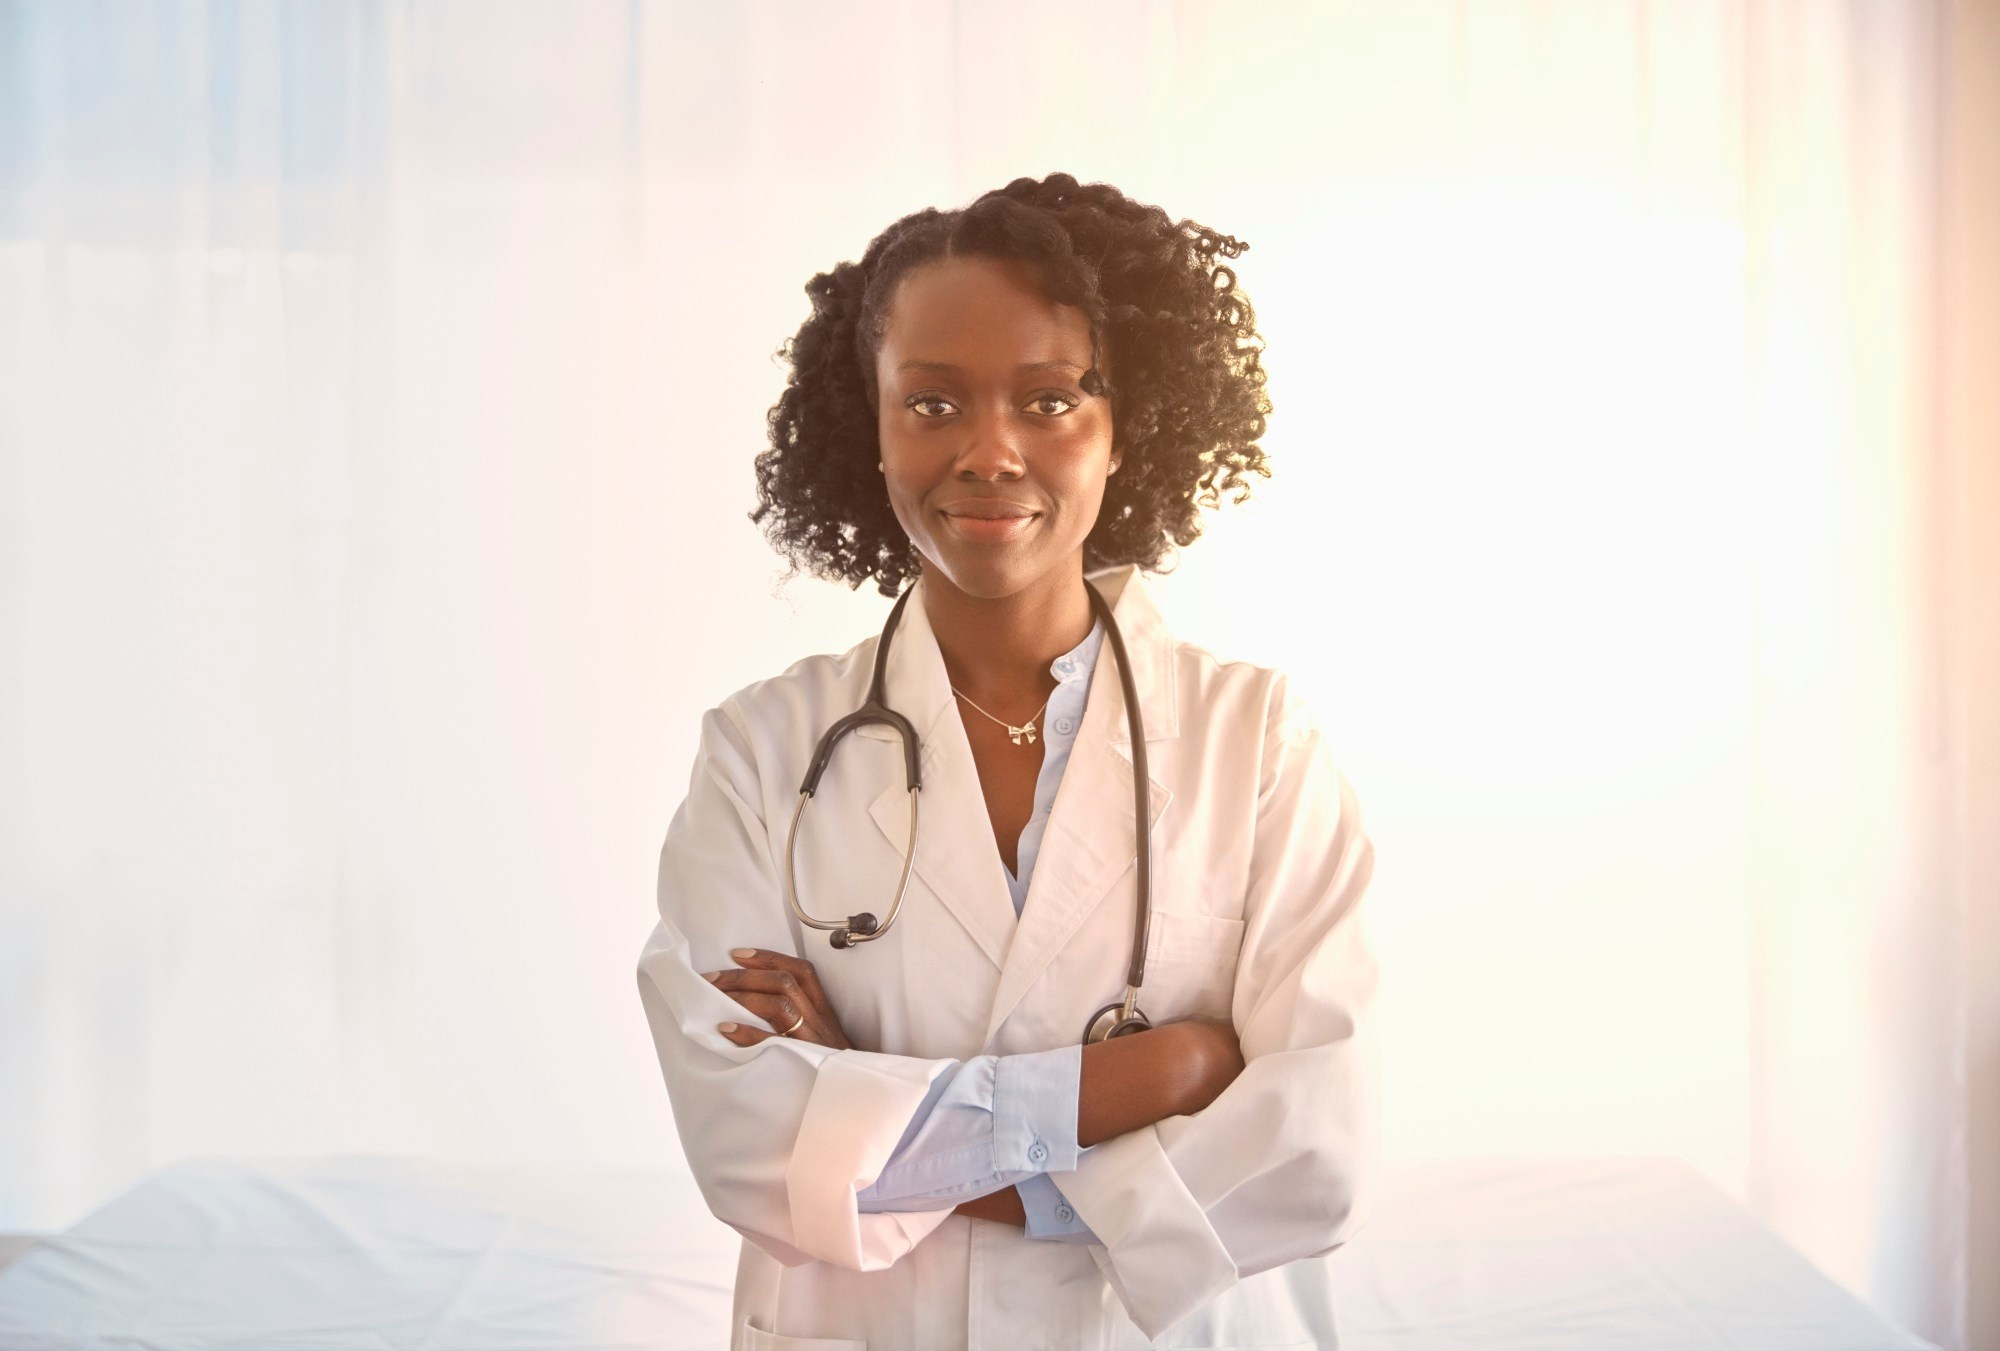 Survey Says: Perspectives From Women in Health Care